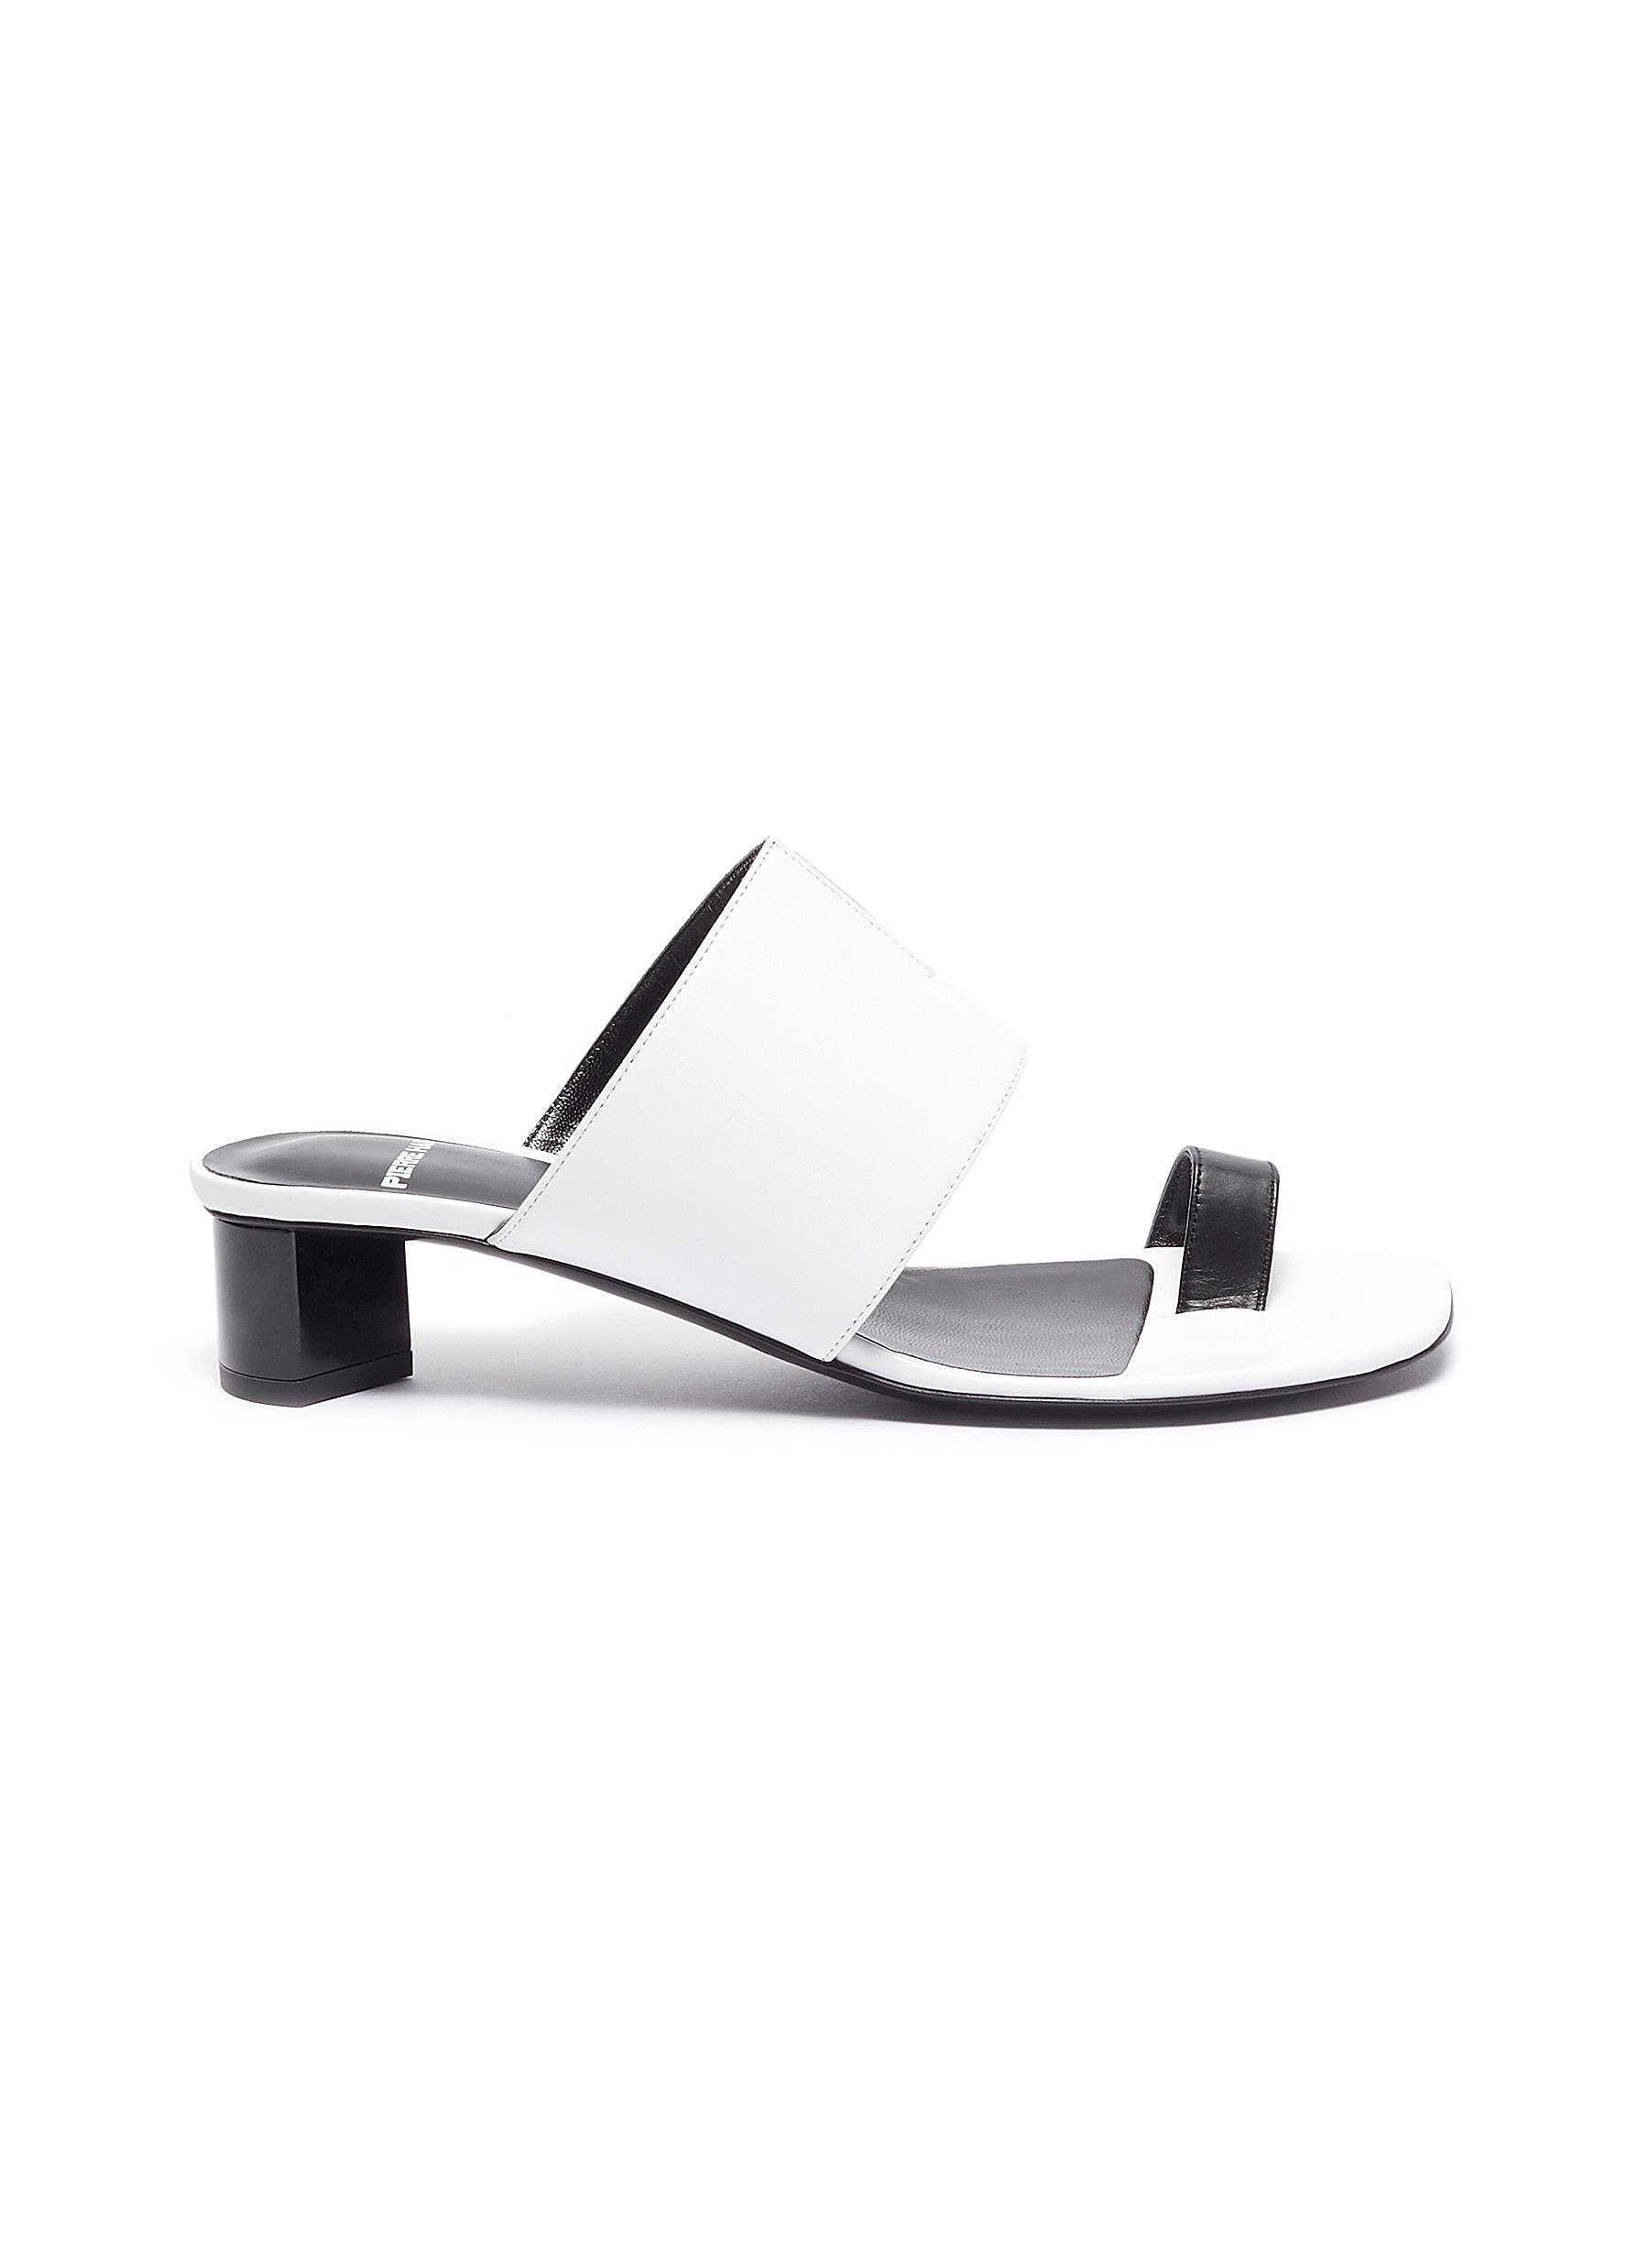 Pierre Hardy Low Heels V Linea contrast toe ring leather sandals